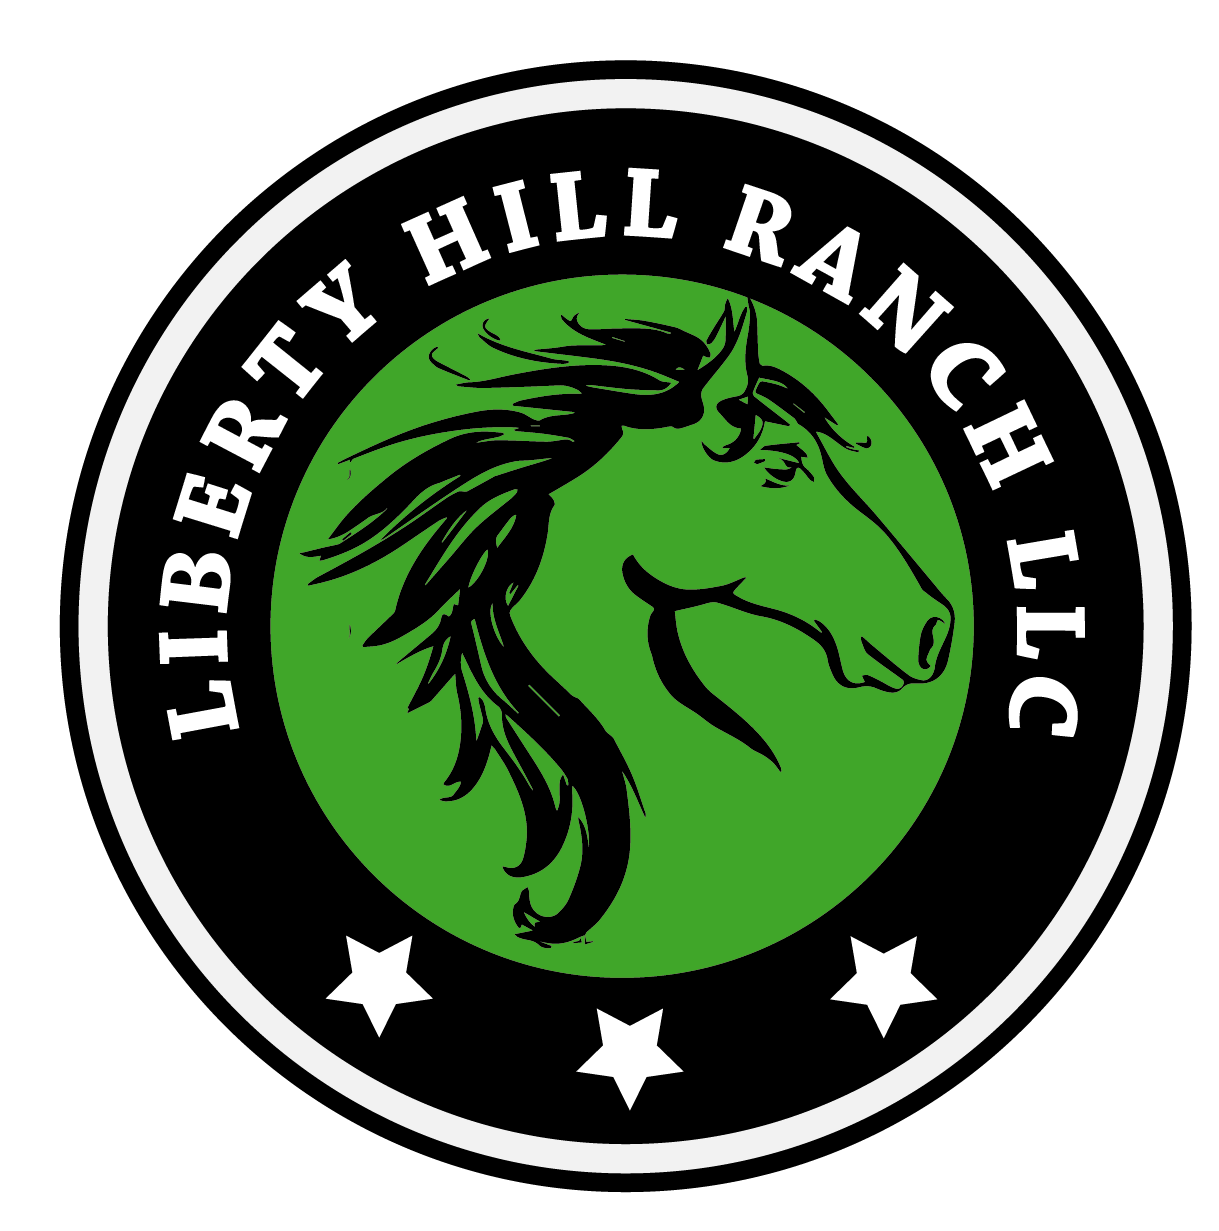 241 Central Park West: Liberty Hill Ranch, LLC. Horse Racing Georgia. Horse Race